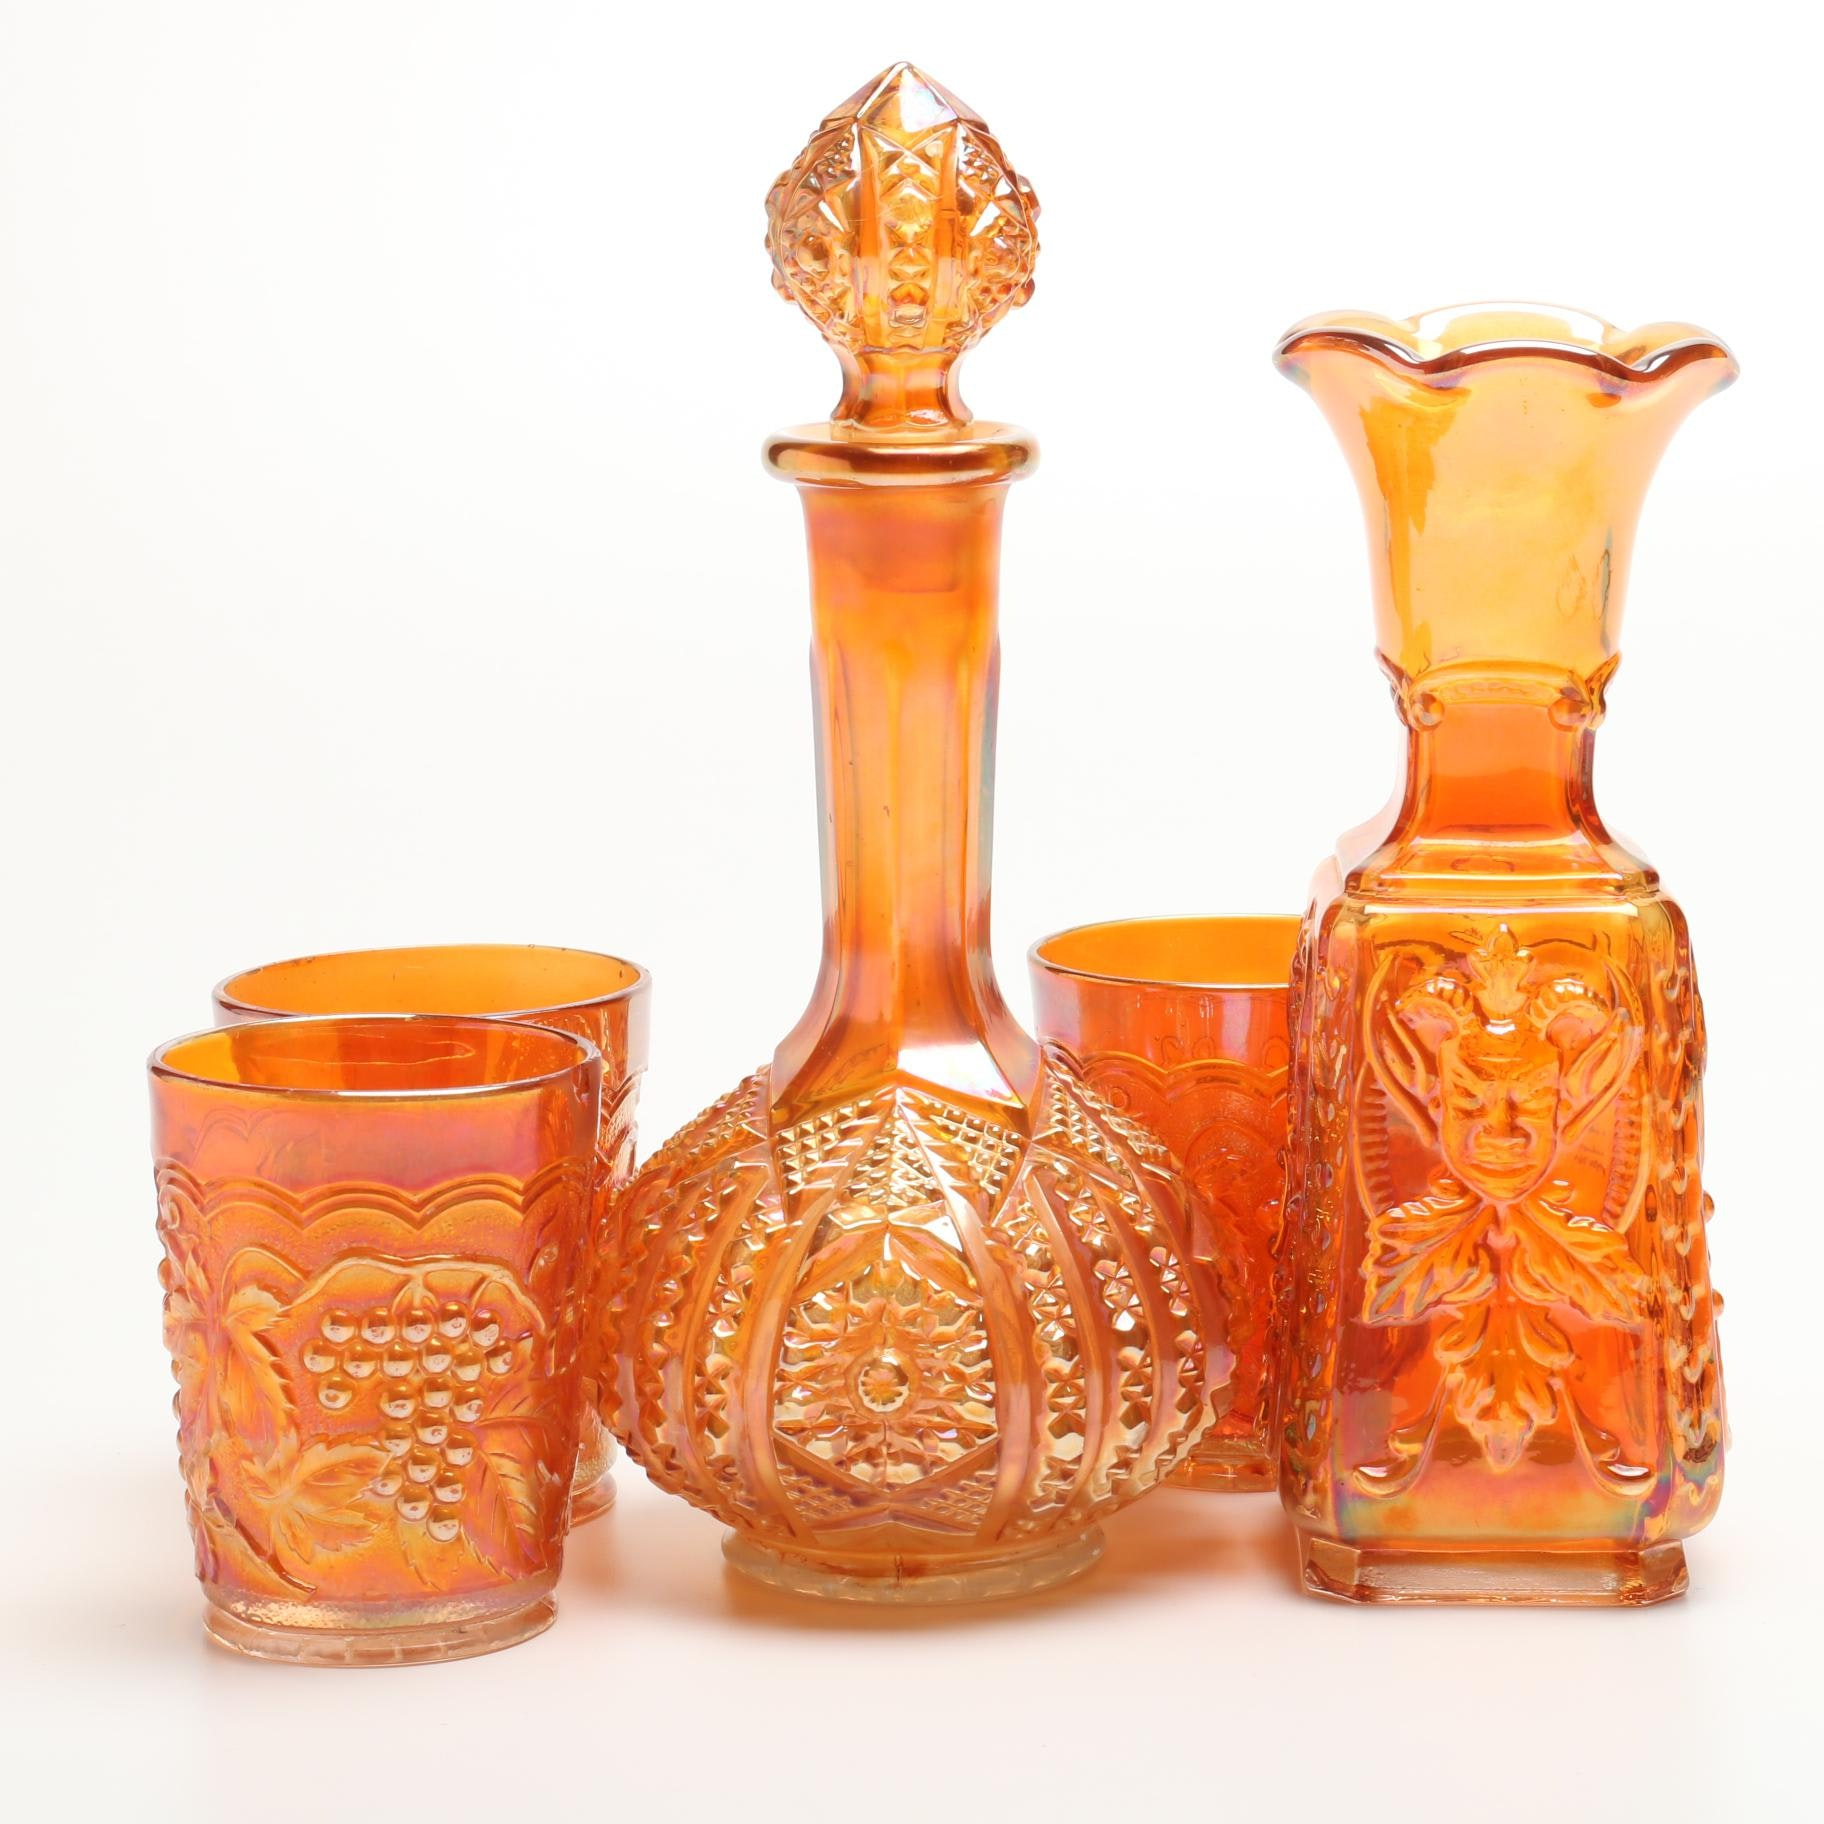 Vintage Imperial Glass Carnival Decanter, Vase and Tumblers